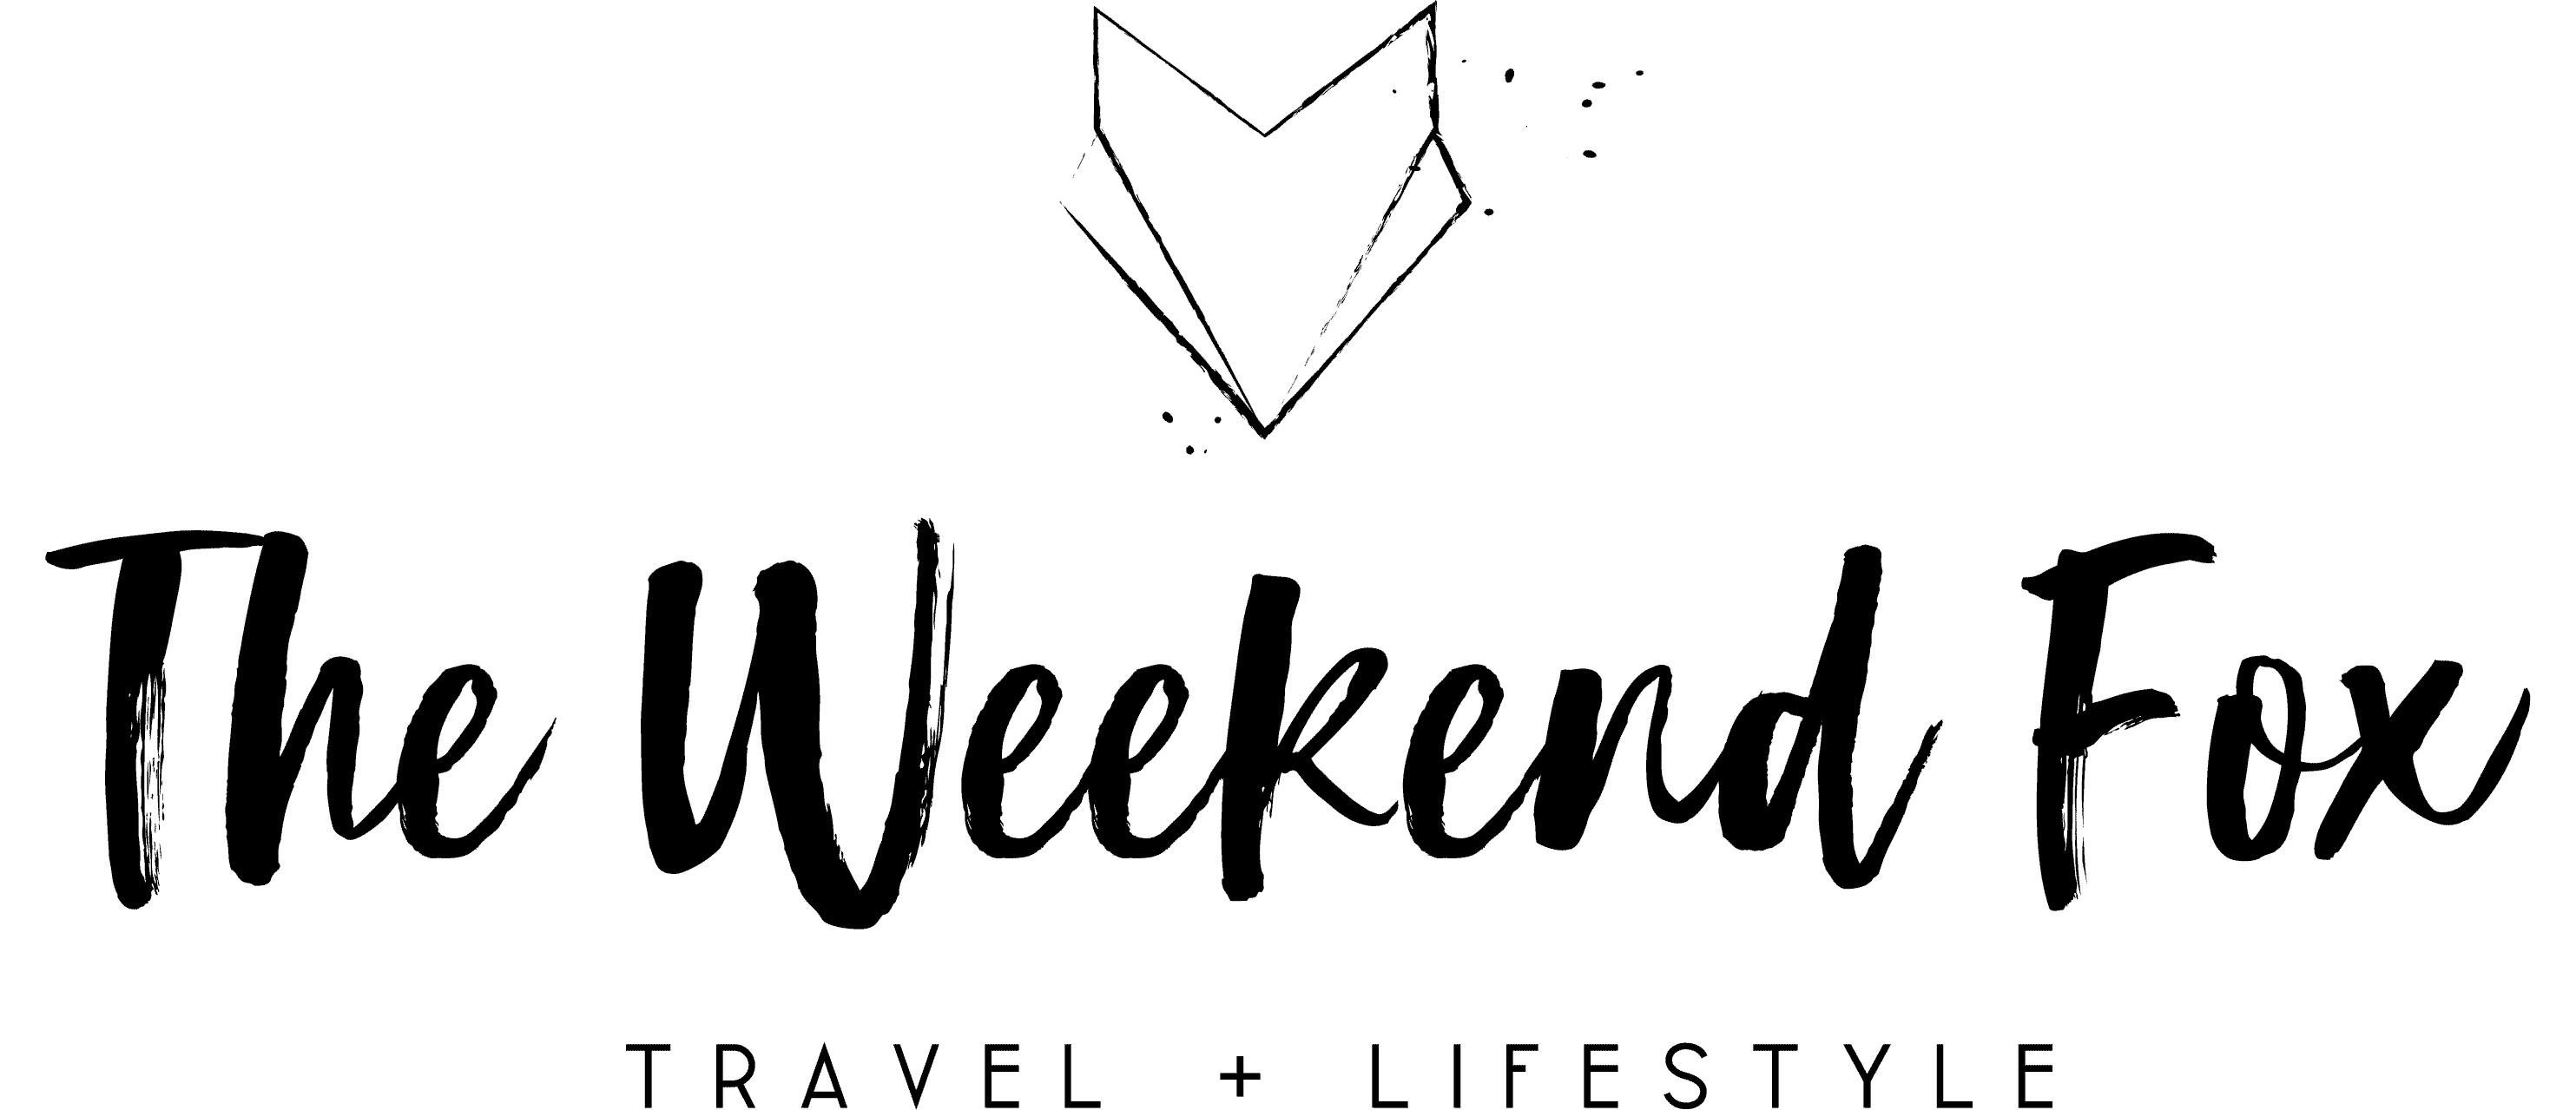 Week End The Weekend Fox Florida Based Travel Lifestyle Blog